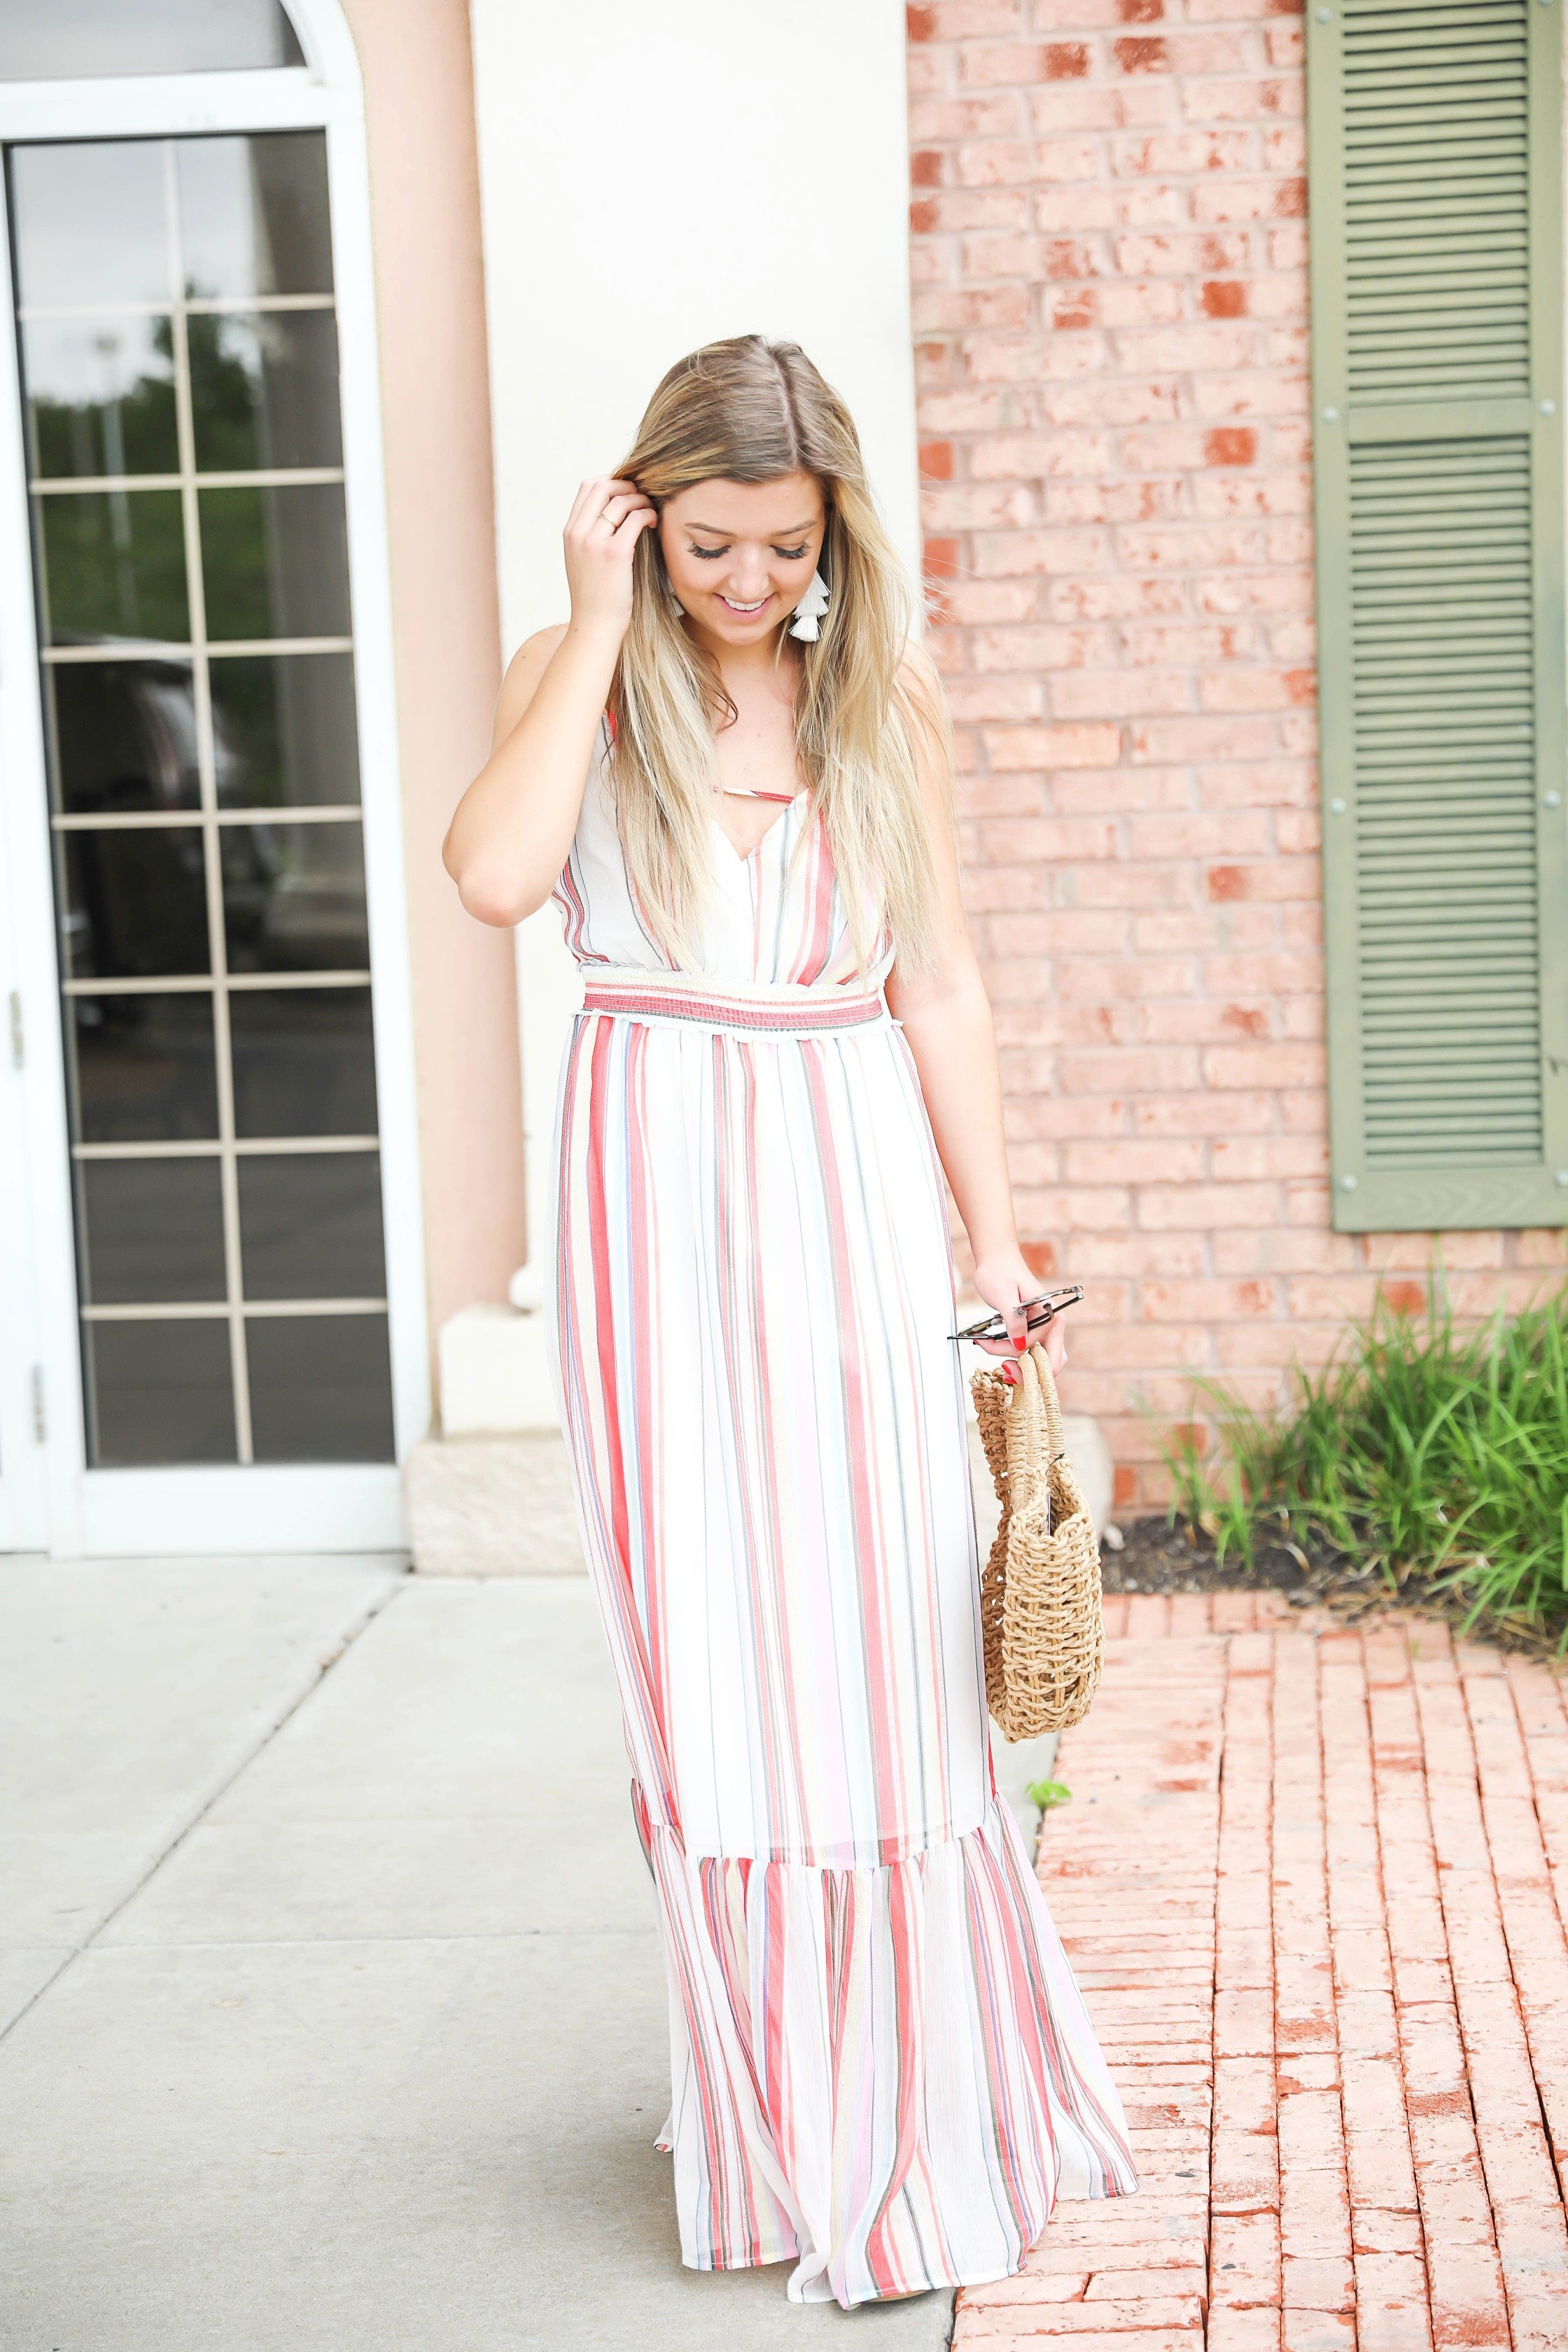 Striped summer maxi dress from revolve! Cute summer fashion and easy outfit ideas! Paired with my favorite straw bag on my blog daily dose of charm by lauren lindmark